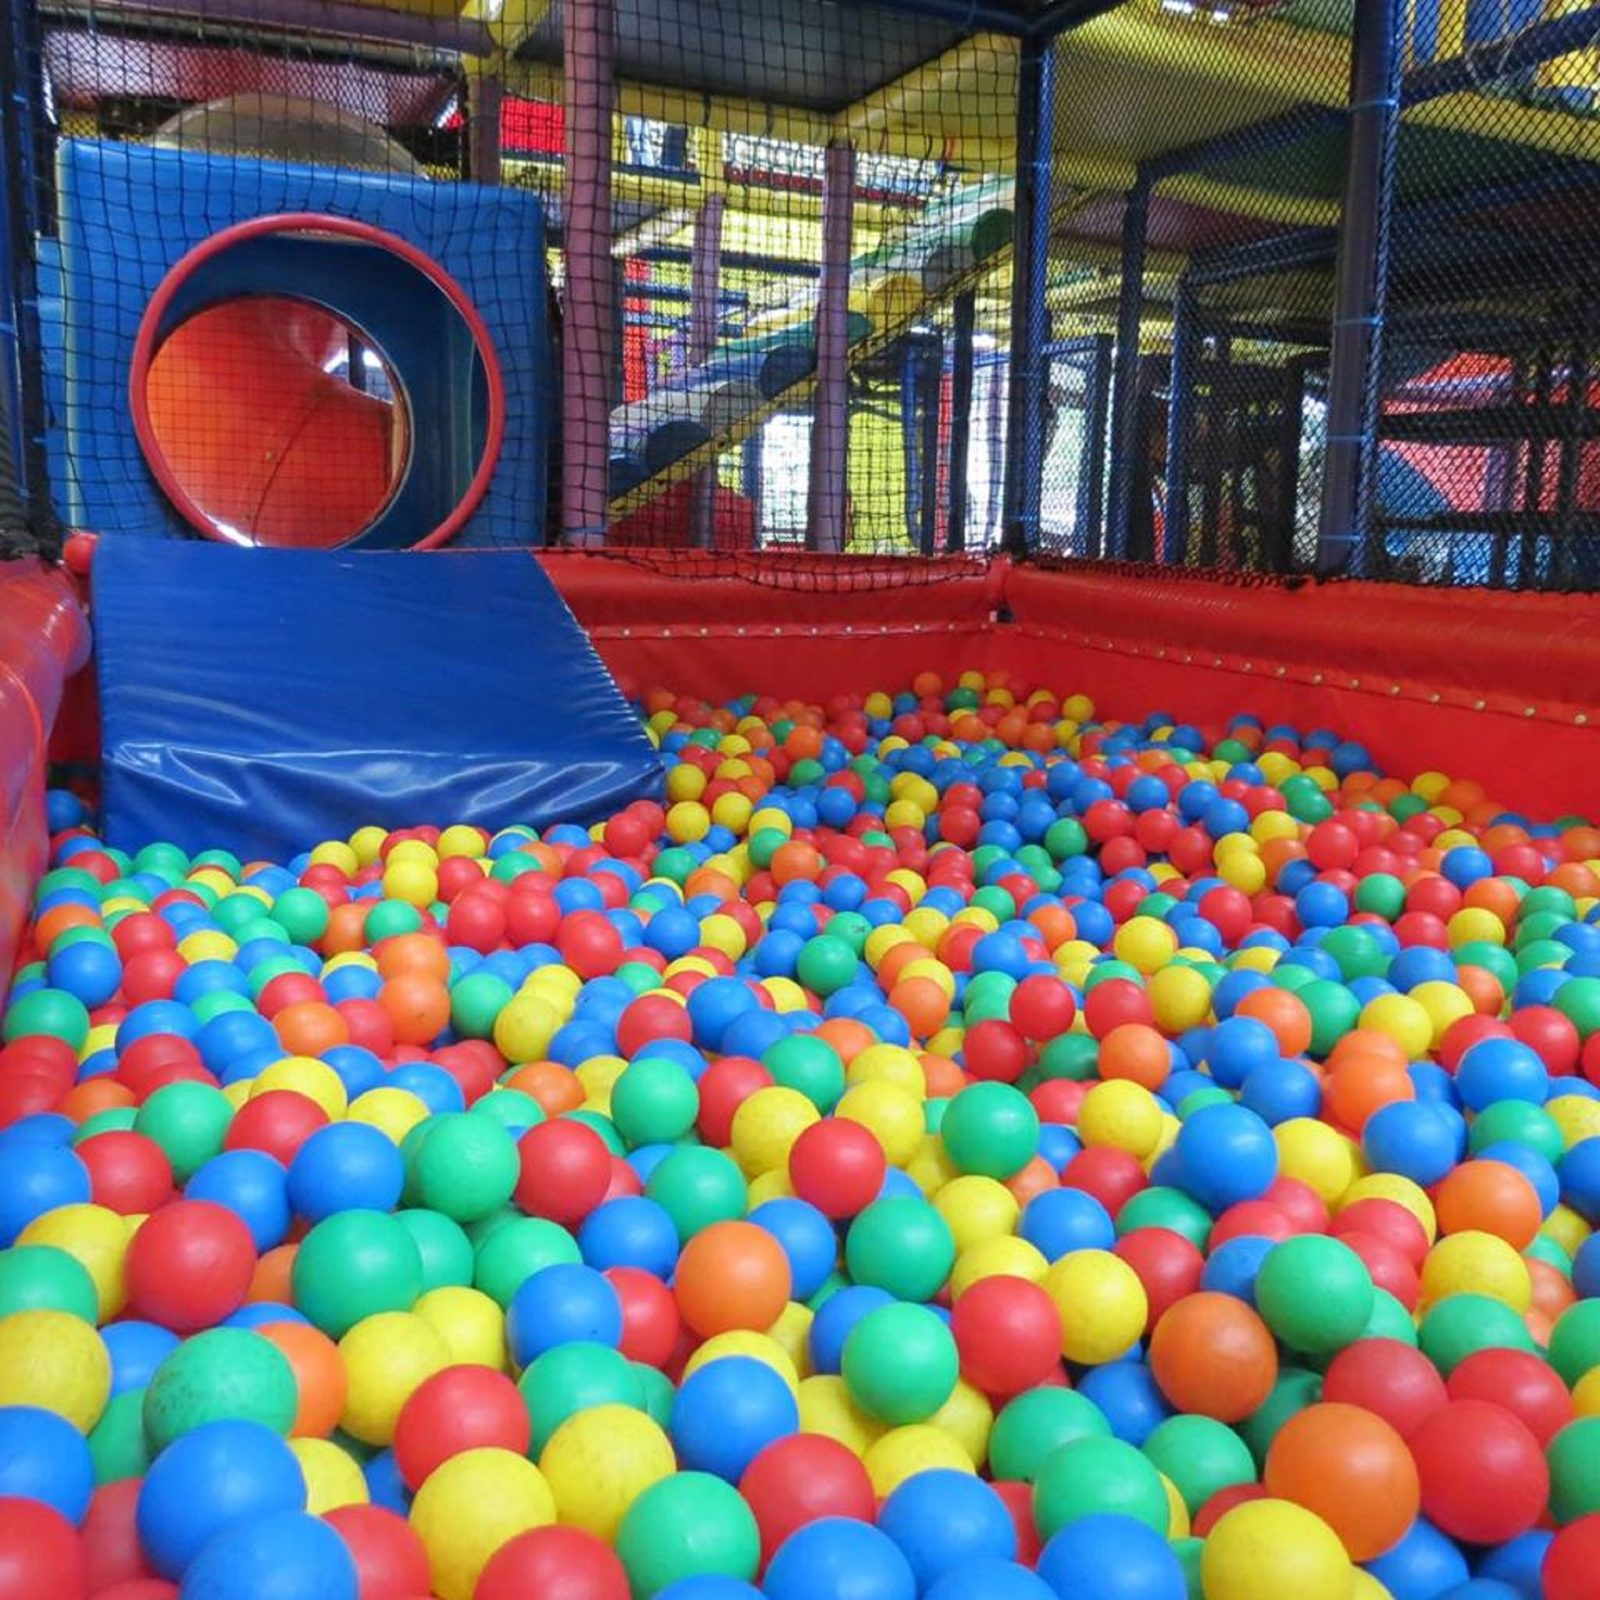 Colourful ball pit for children to play in at Playmaze Narellan